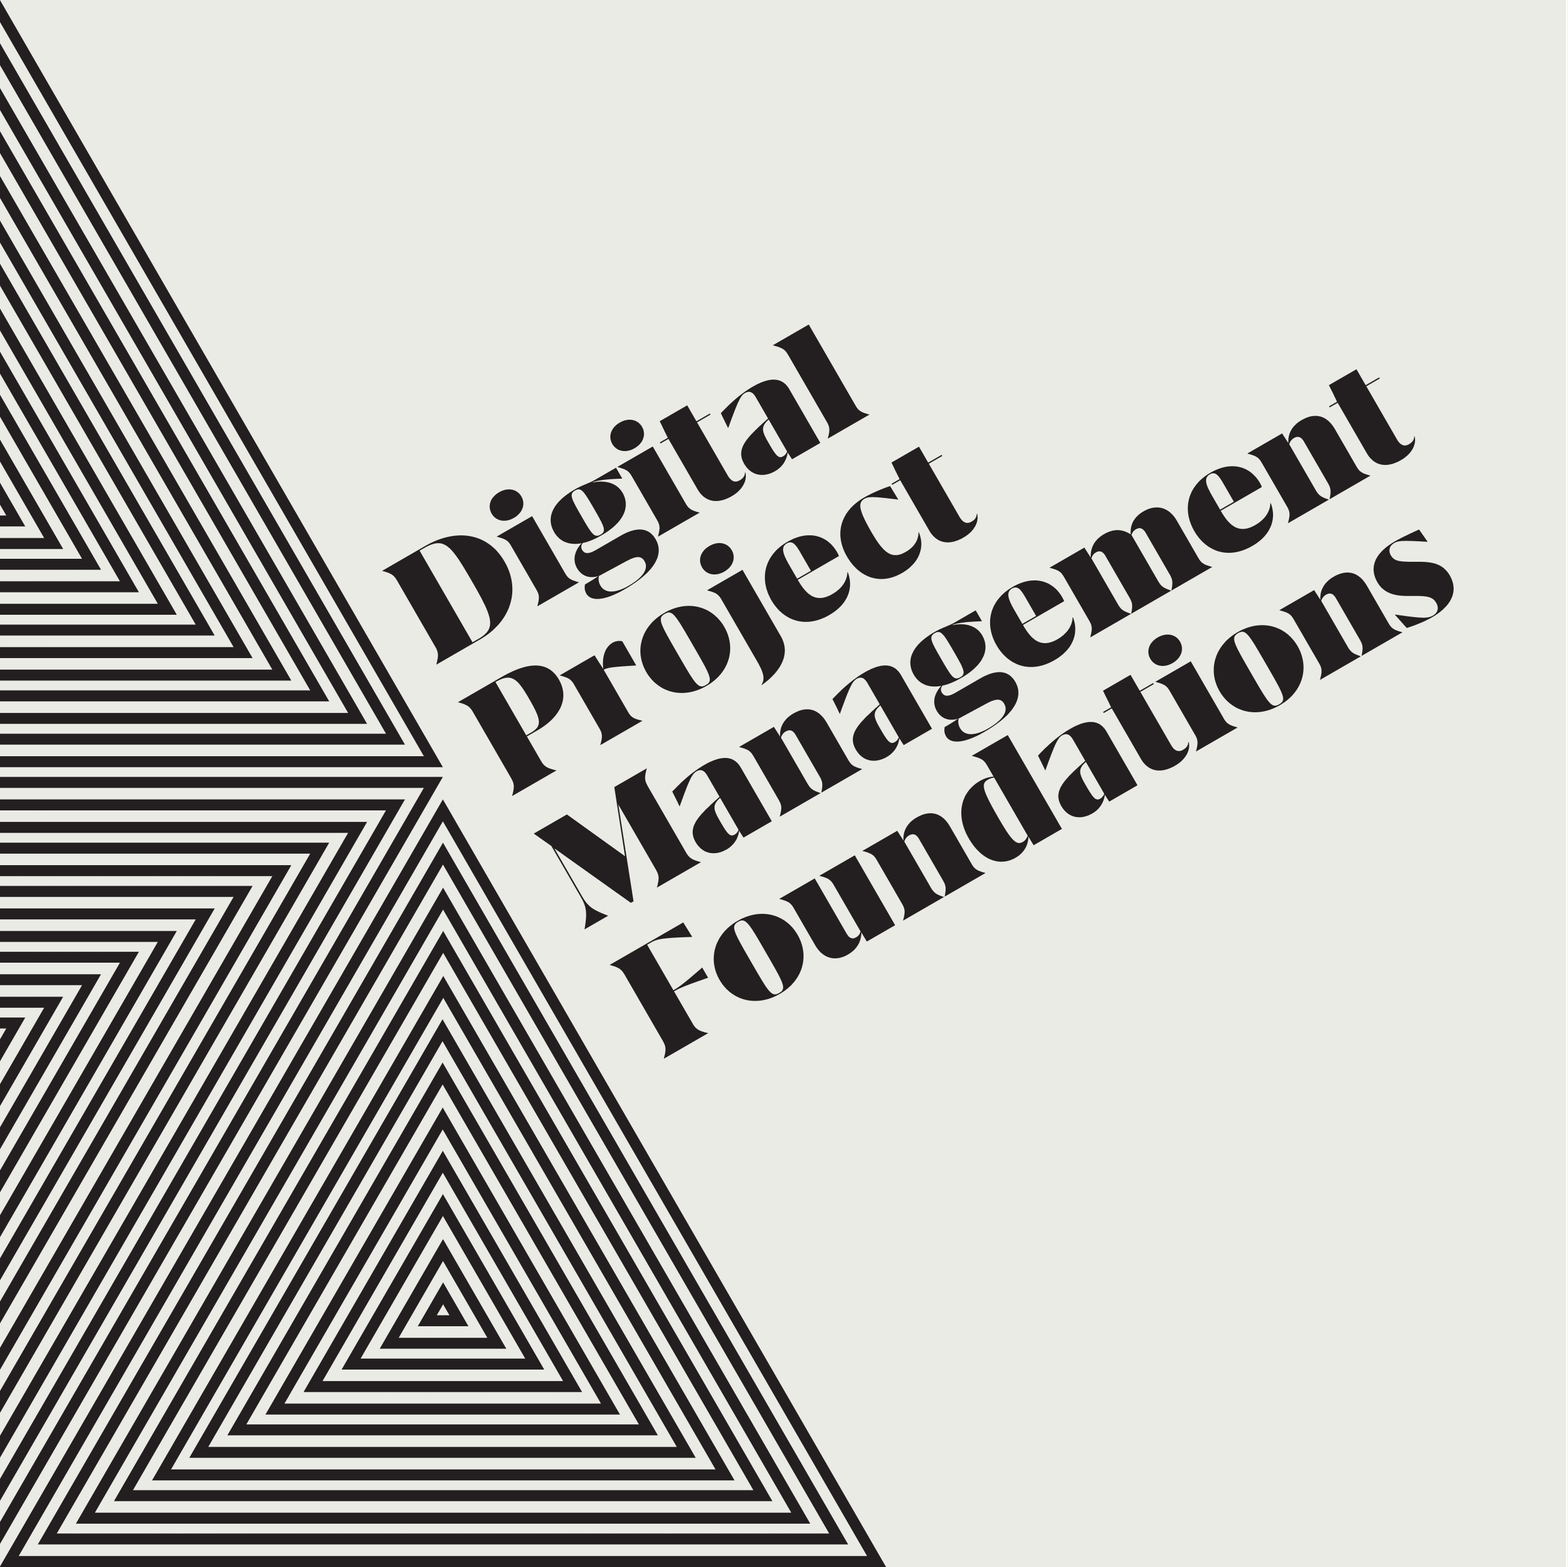 Digital Project Management Foundations course cover